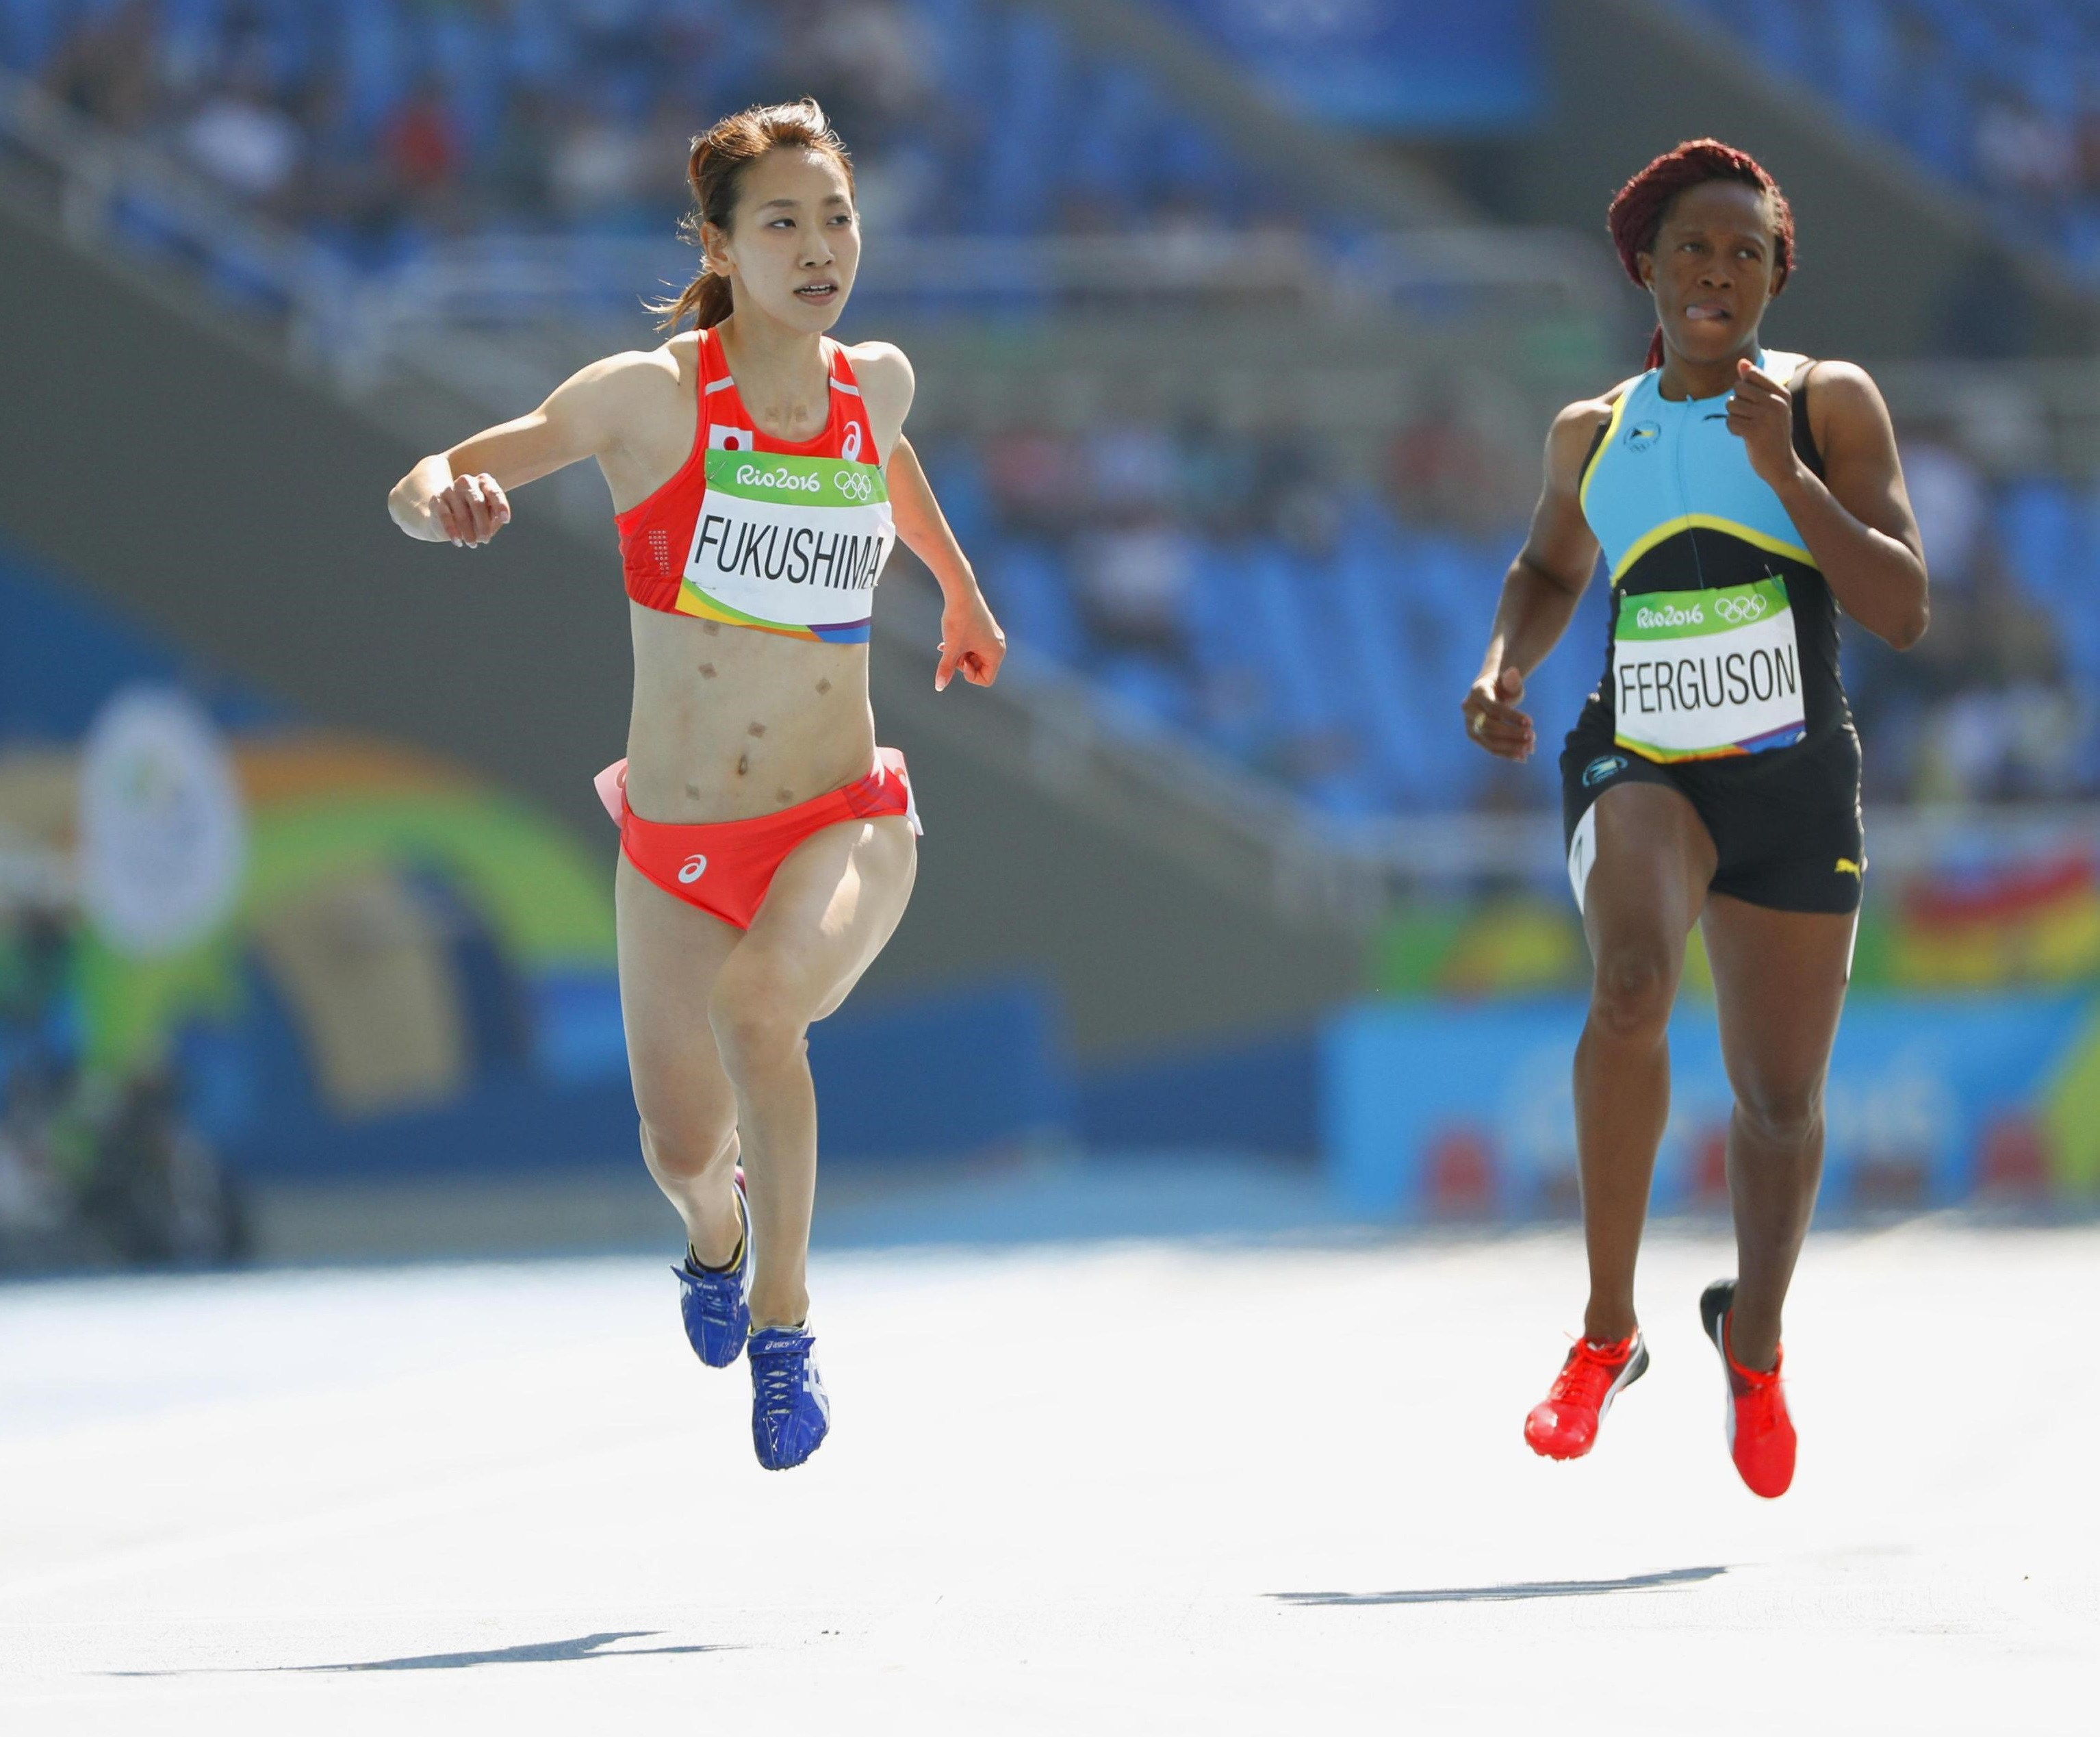 Chisato Fukushima competes in the women's 200-meter heat on Monday at the 2016 Rio de Janeiro Olympic. Fukushima failed to advance. | KYODO